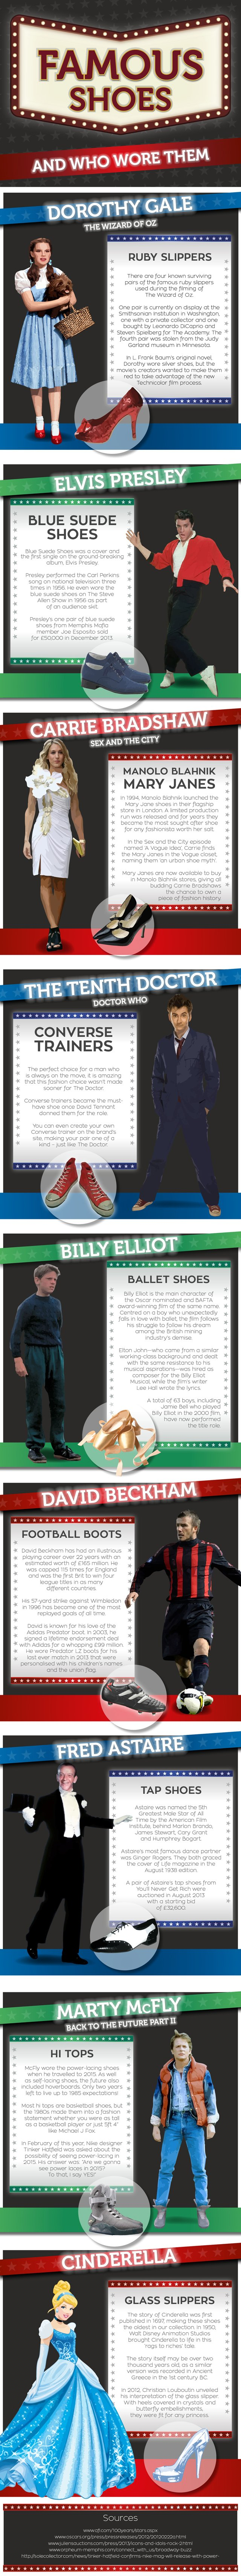 Famous Shoes and Who Wore Them